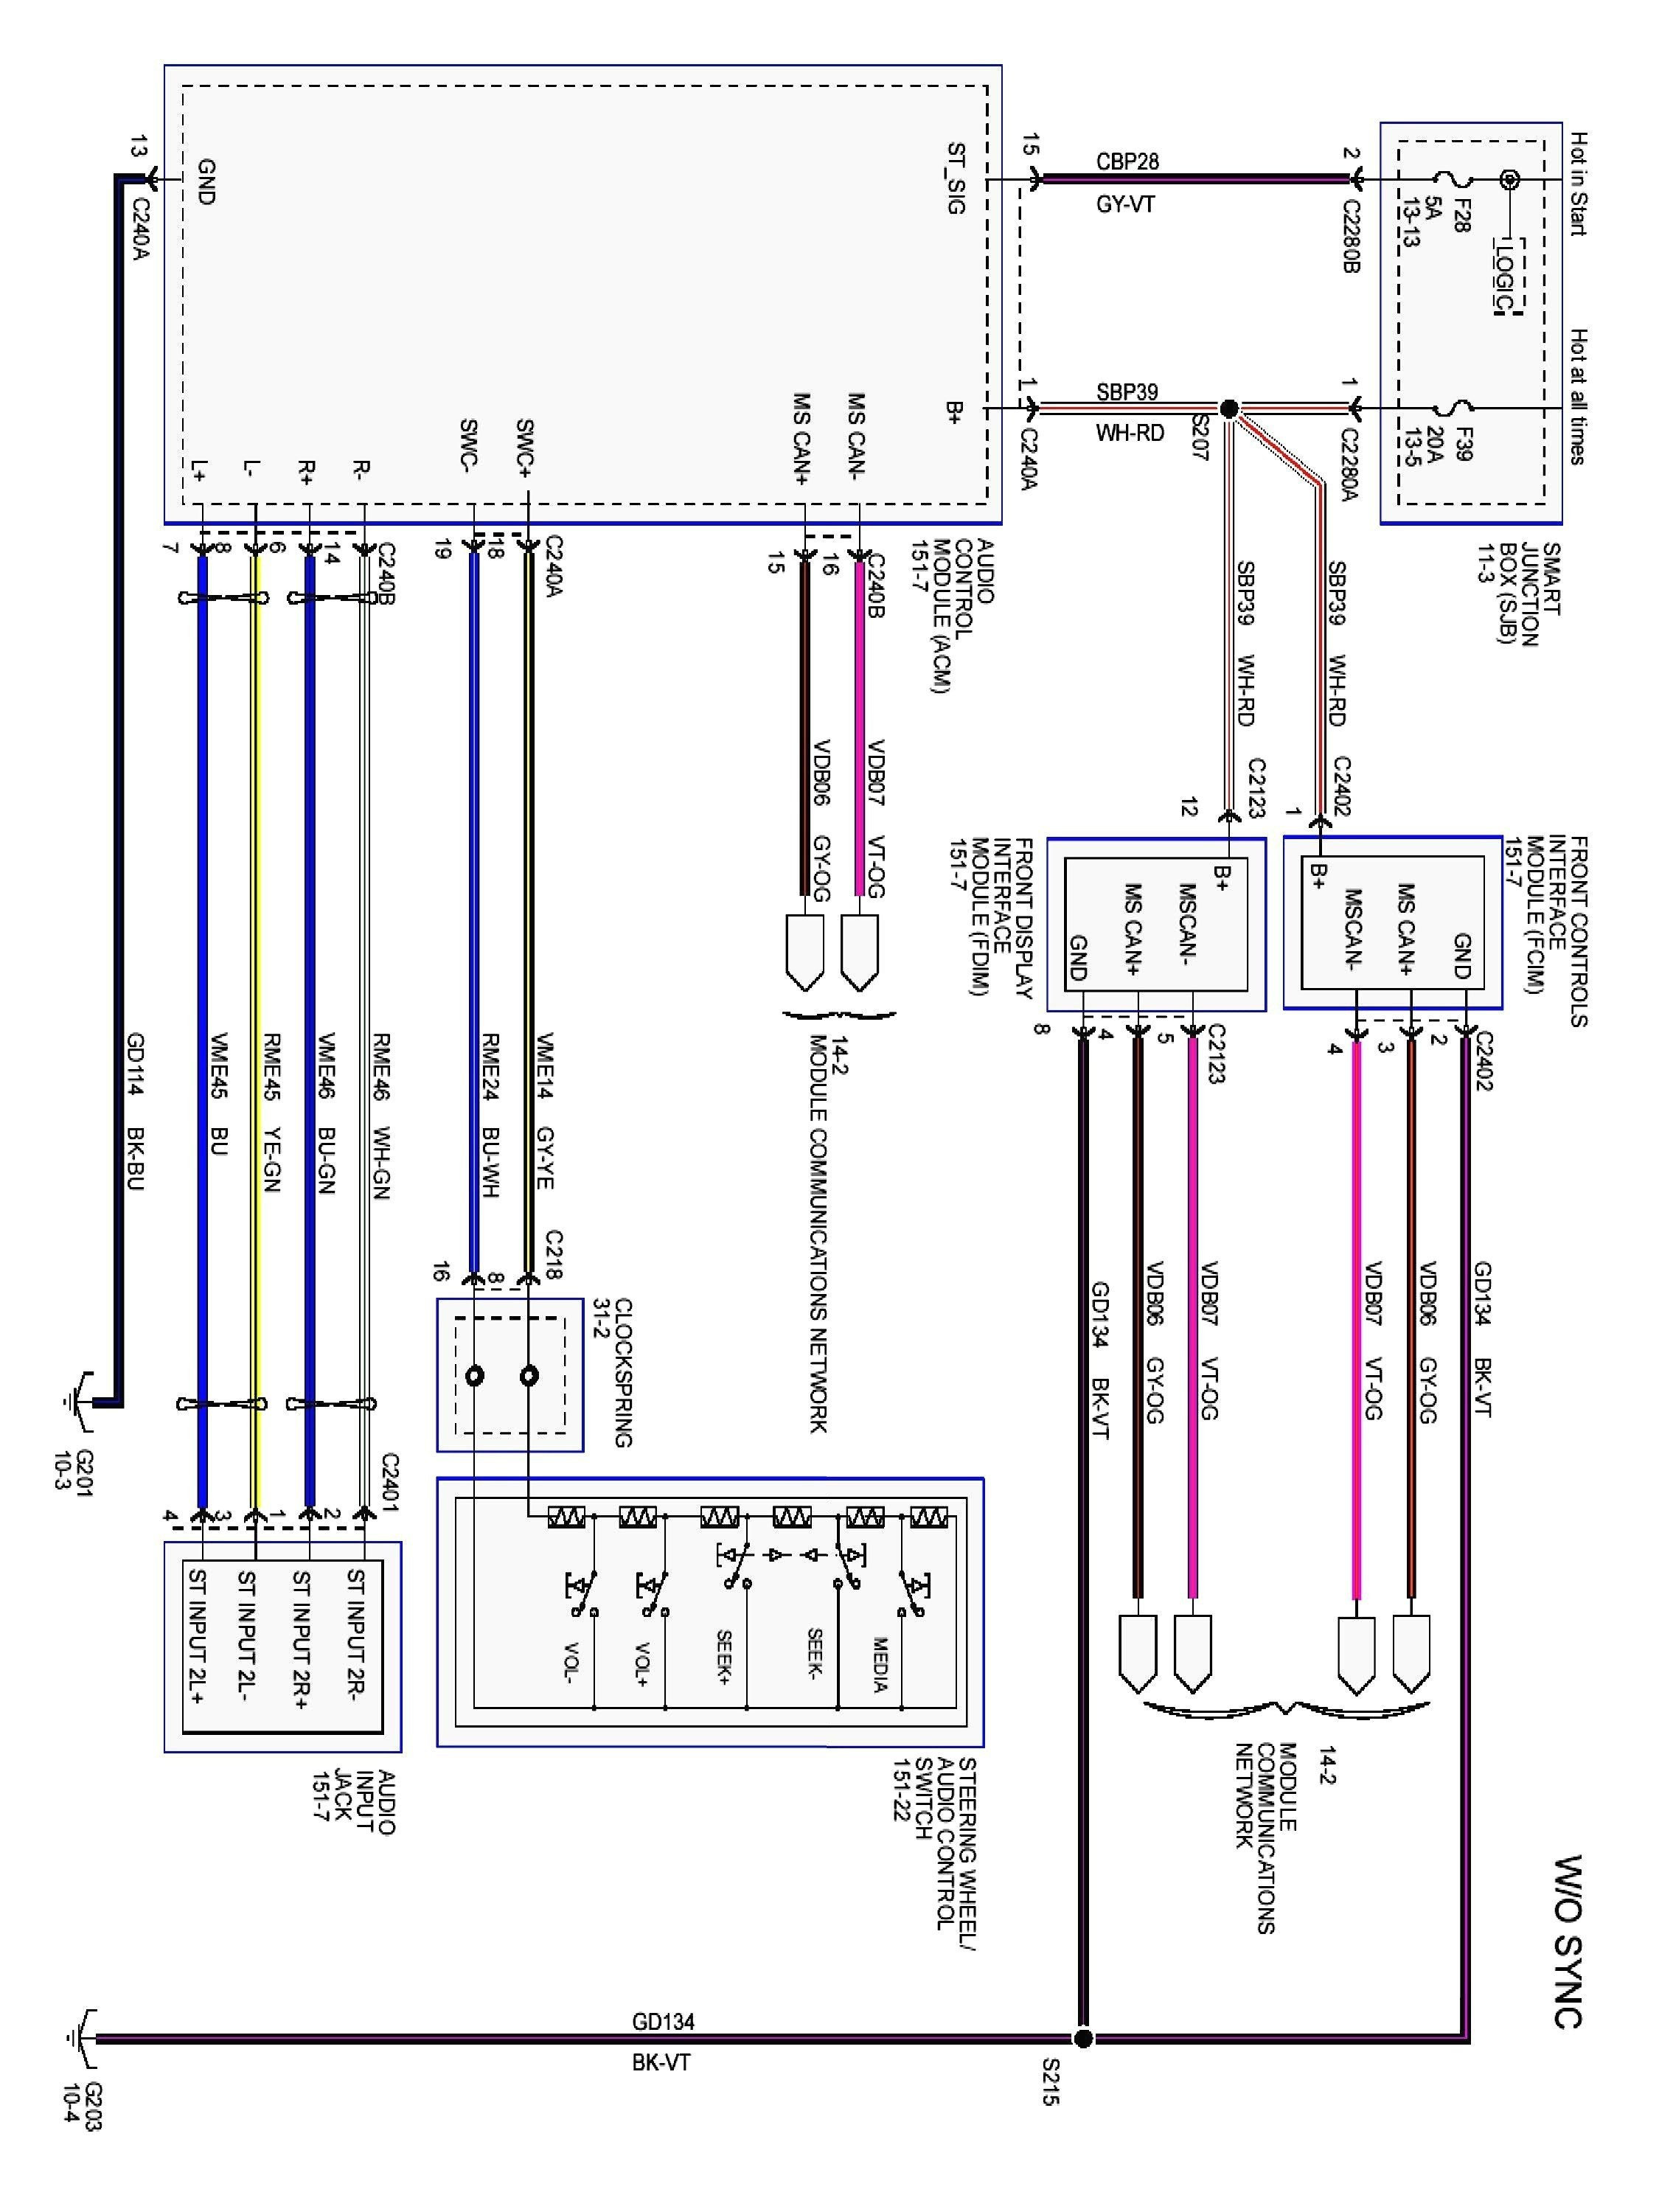 2007 Ford Focus Radio Wiring Diagram from static-resources.imageservice.cloud